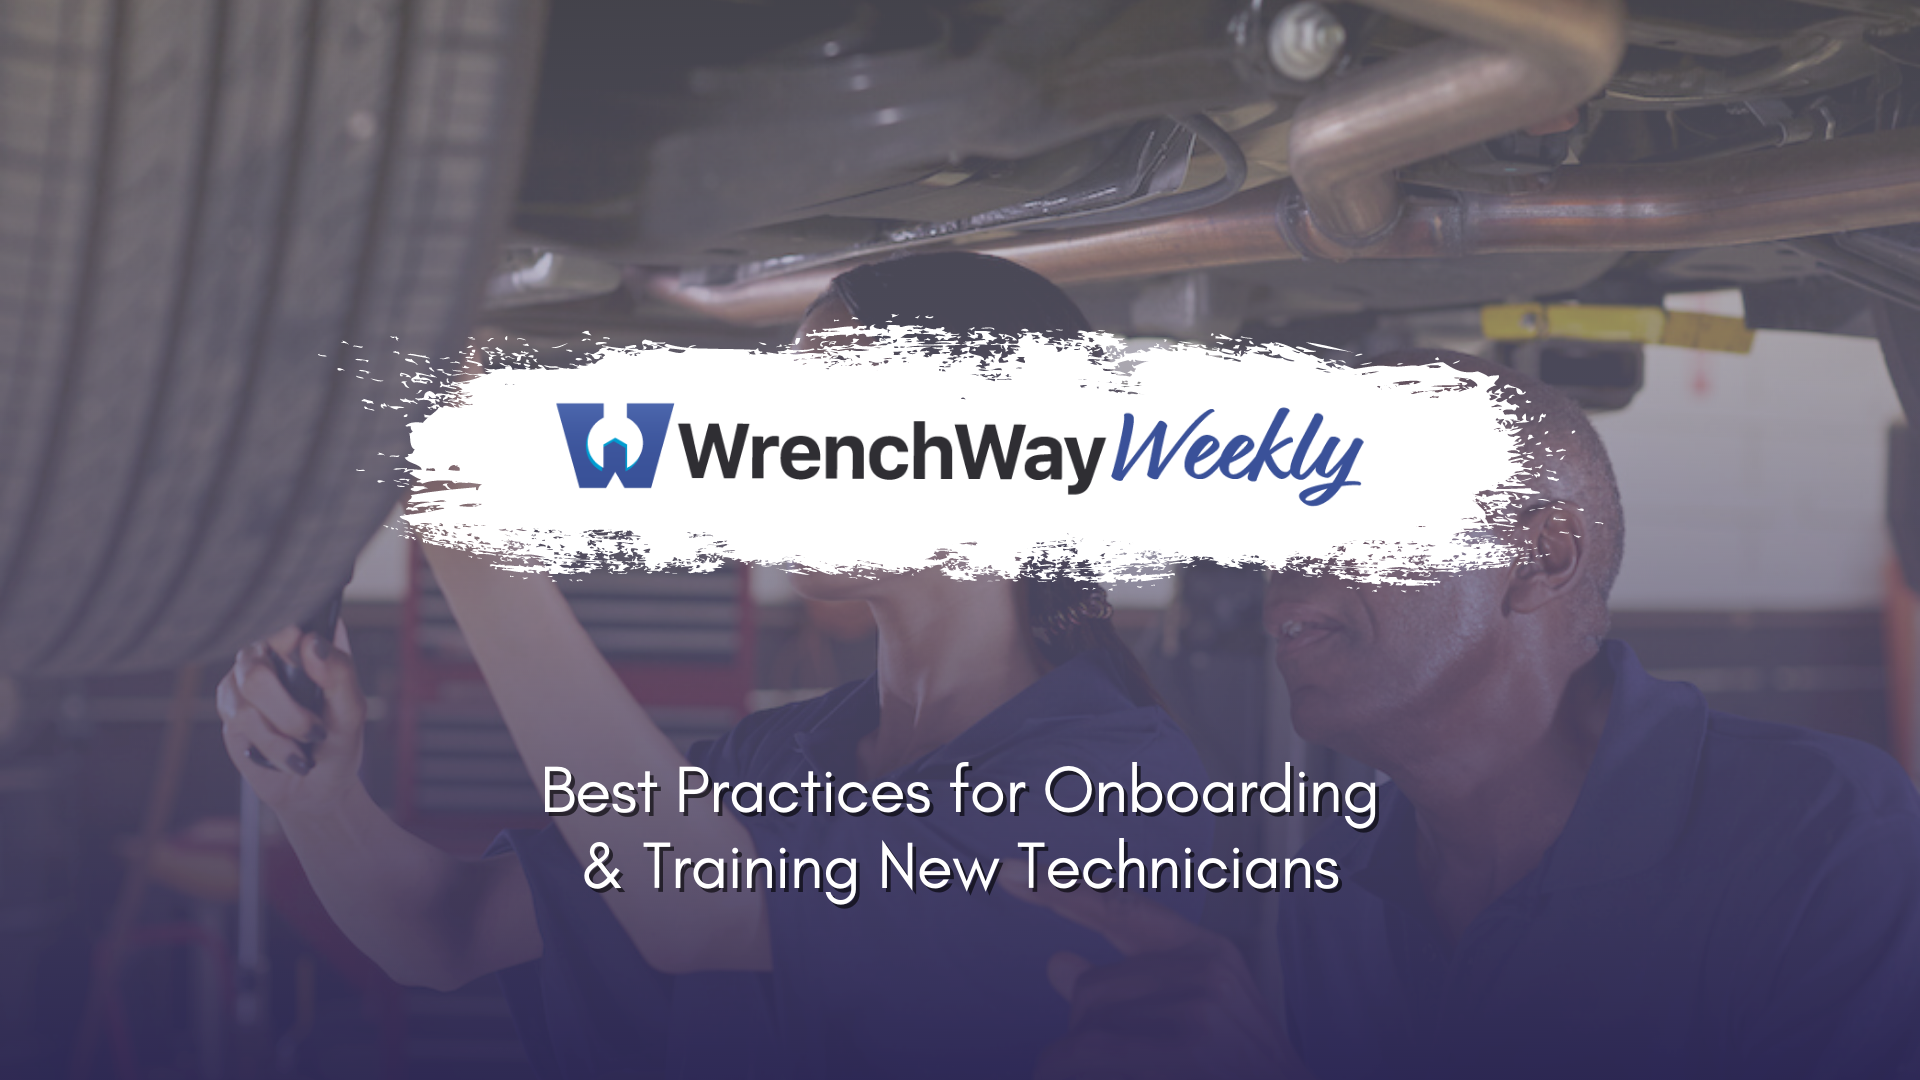 wrenchway weekly episode onboarding new technicians